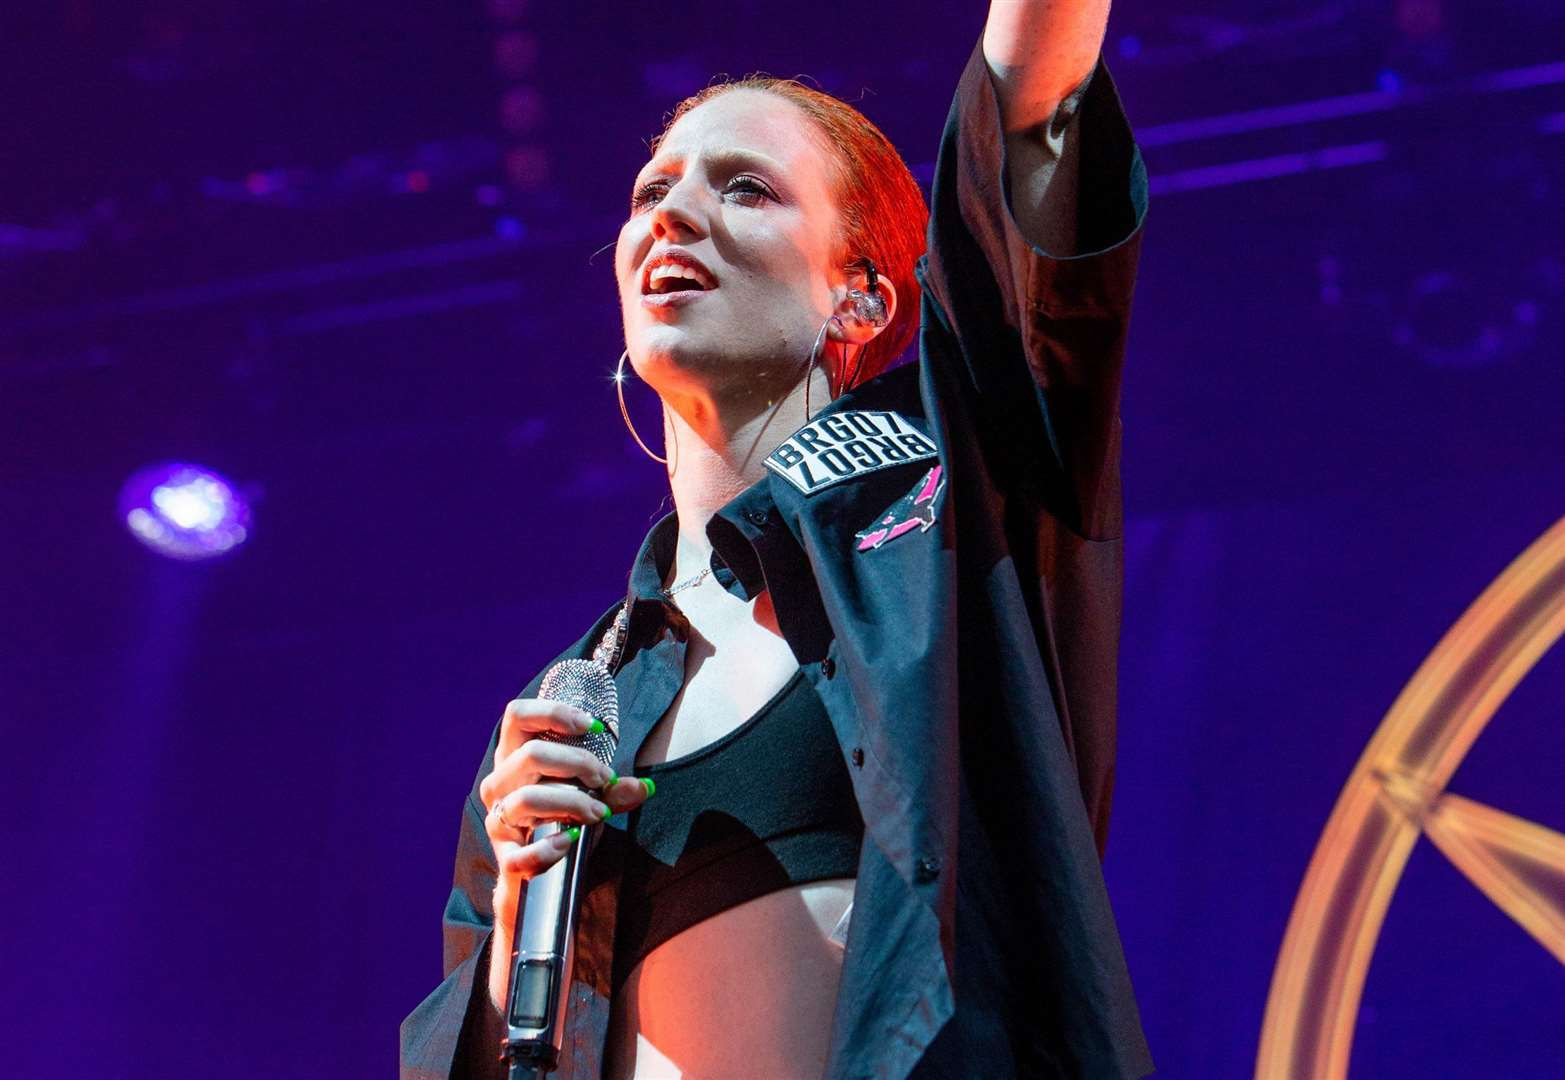 Jess Glynne back to her fiery self at Thetford Forest gig